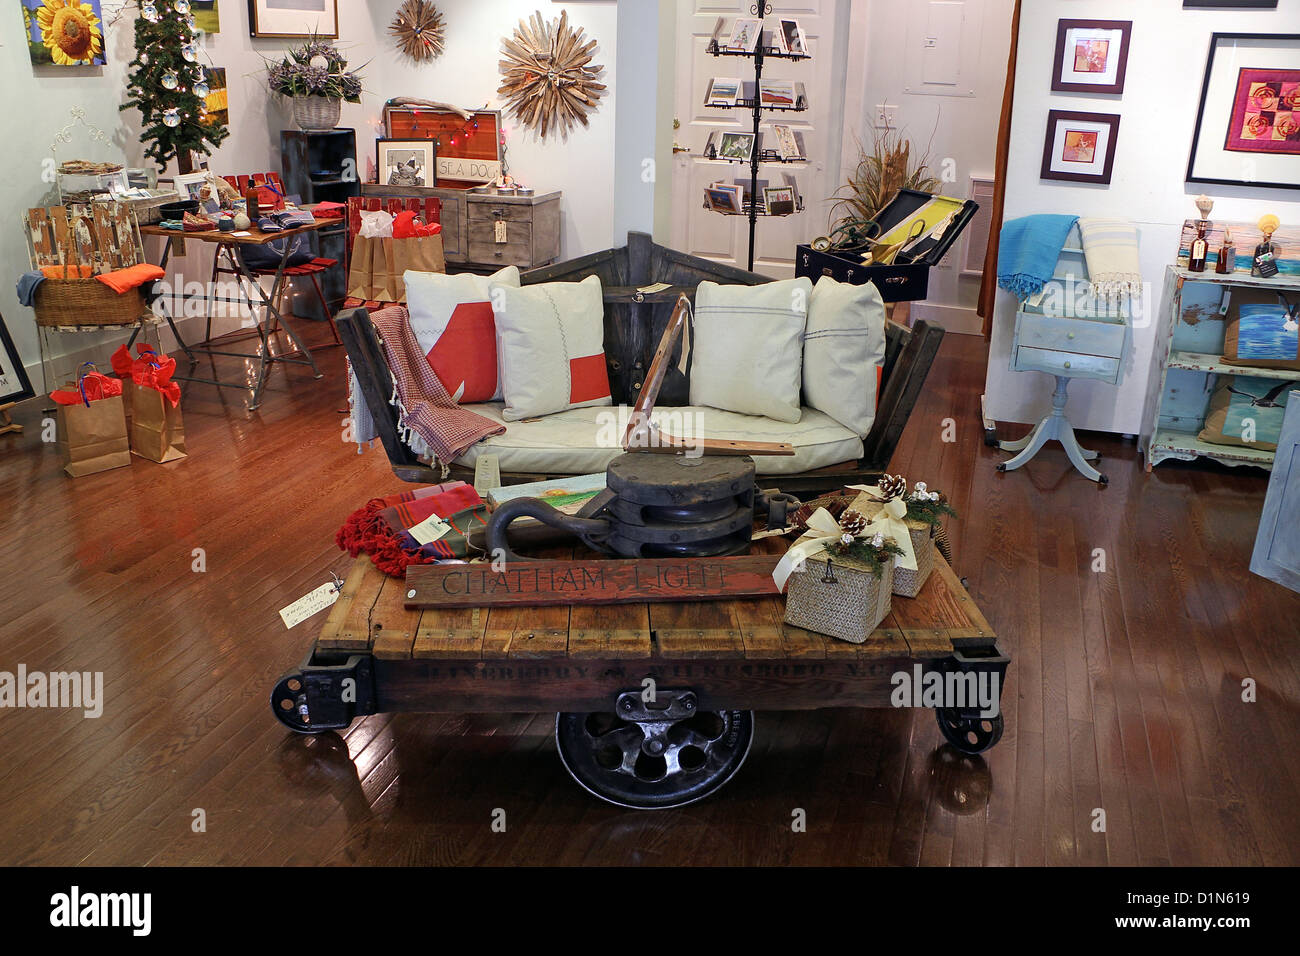 A Sofa Crafted From An Old Boat And A Coffee Table From Rail Wheels And  Boards At The Atlantic Workshop, Chatham, Cape Cod